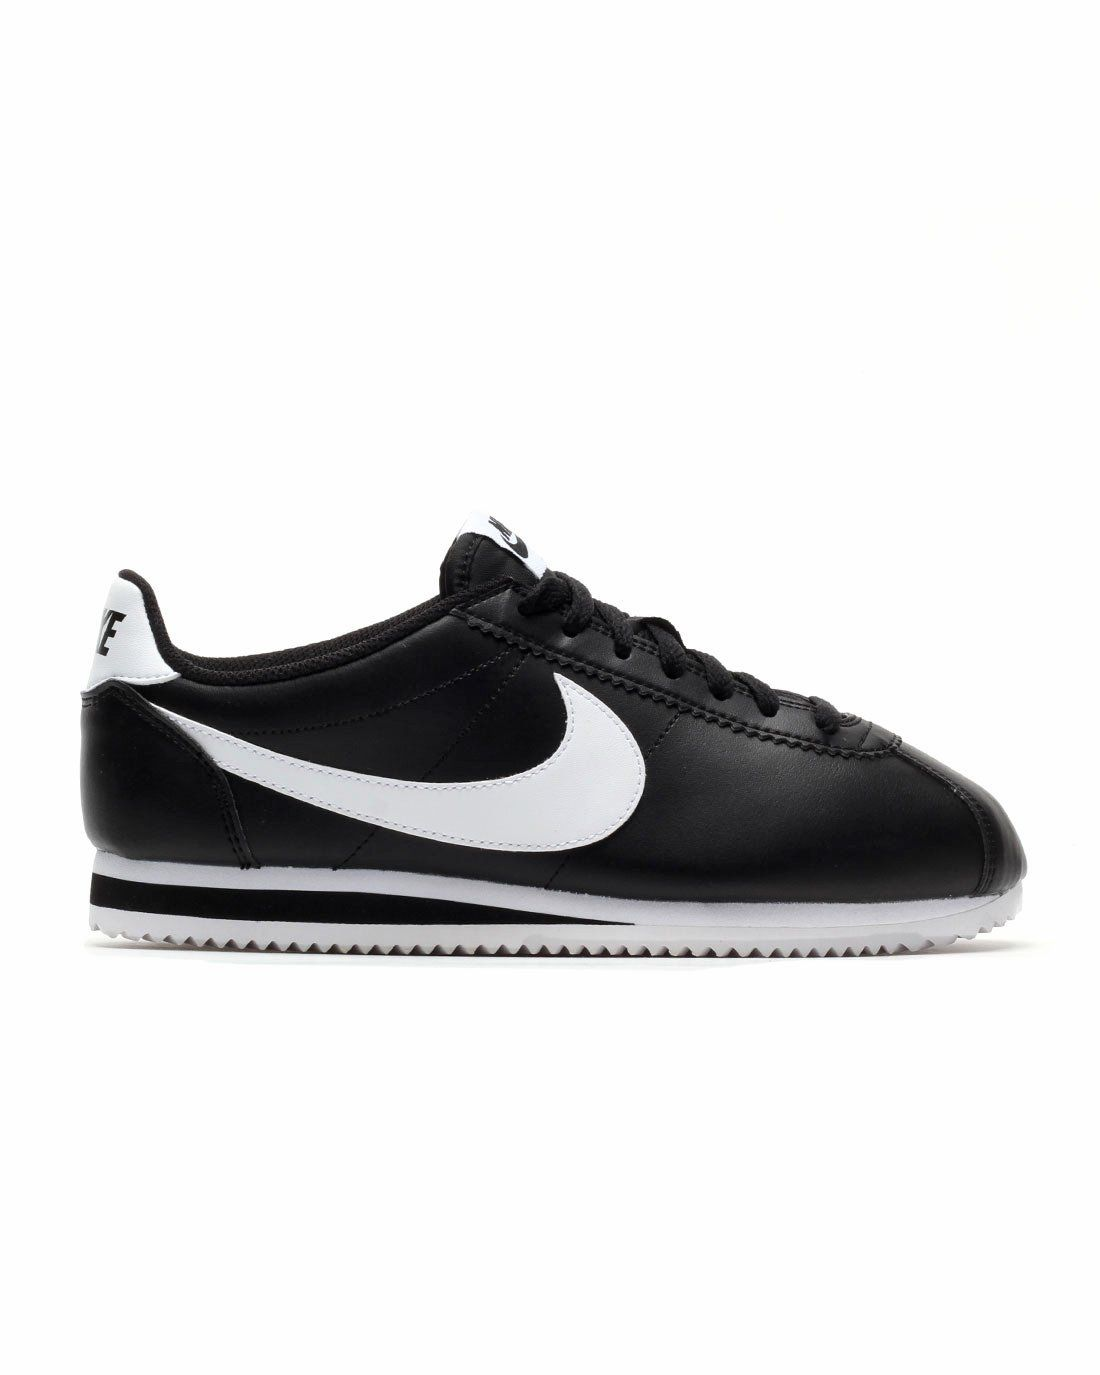 Nike Women's Wmns Classic Cortez Leather, BALCK/WHITE-WHITE, 10.5 US. Model  Number: 807471010. Gender: womens. Color: BALCK/WHITE-WHITE.